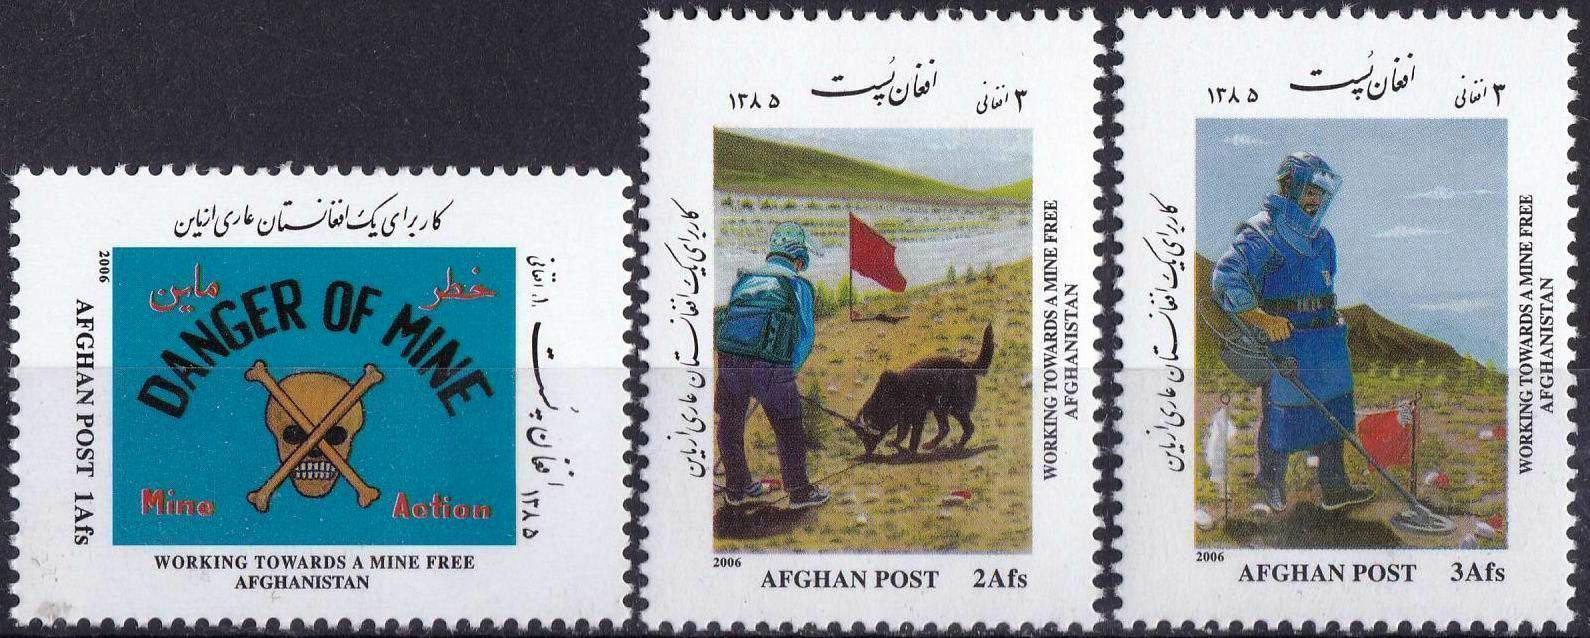 Afghanistan 2006 Stamps Working Towards a Mine Free Afghanistan